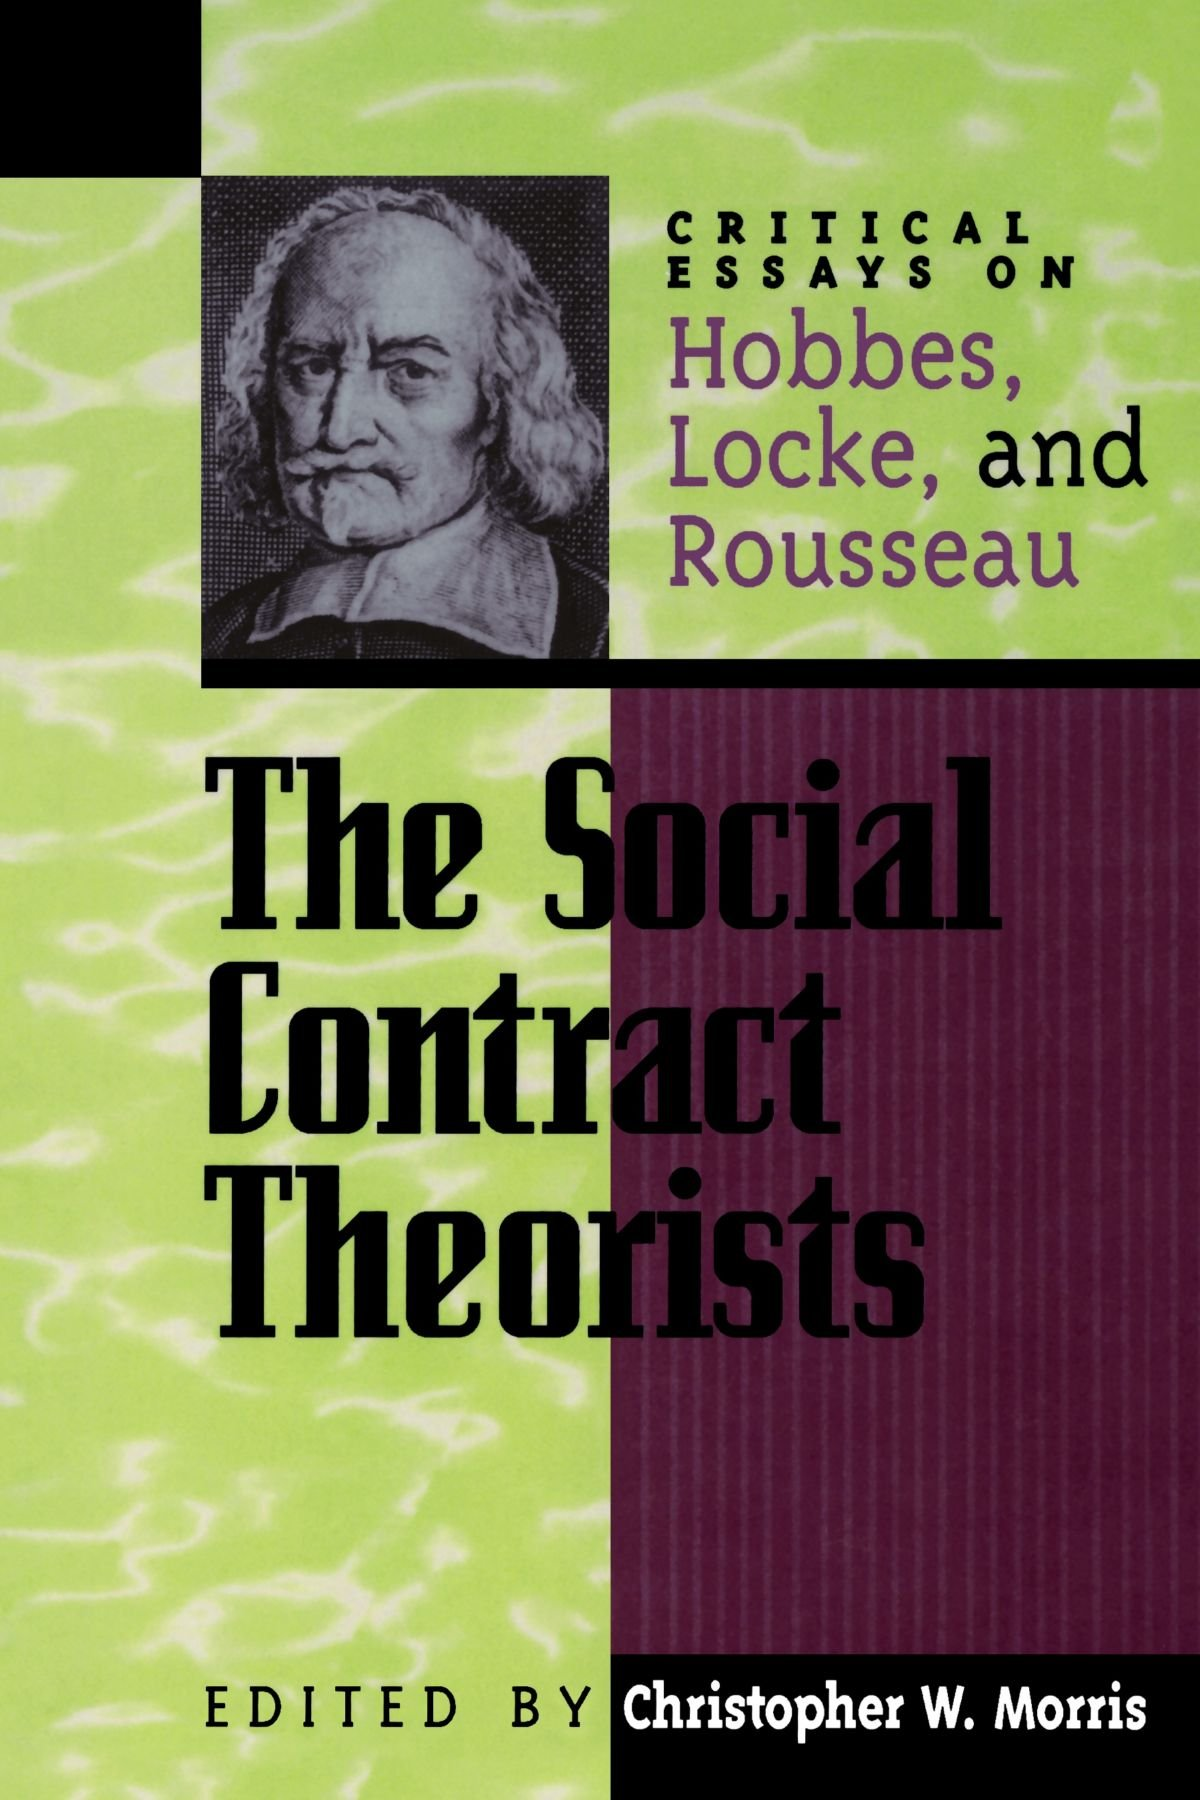 the social contract theorists critical essays on hobbes locke the social contract theorists critical essays on hobbes locke and rousseau critical essays on the classics critical essays on the classics series